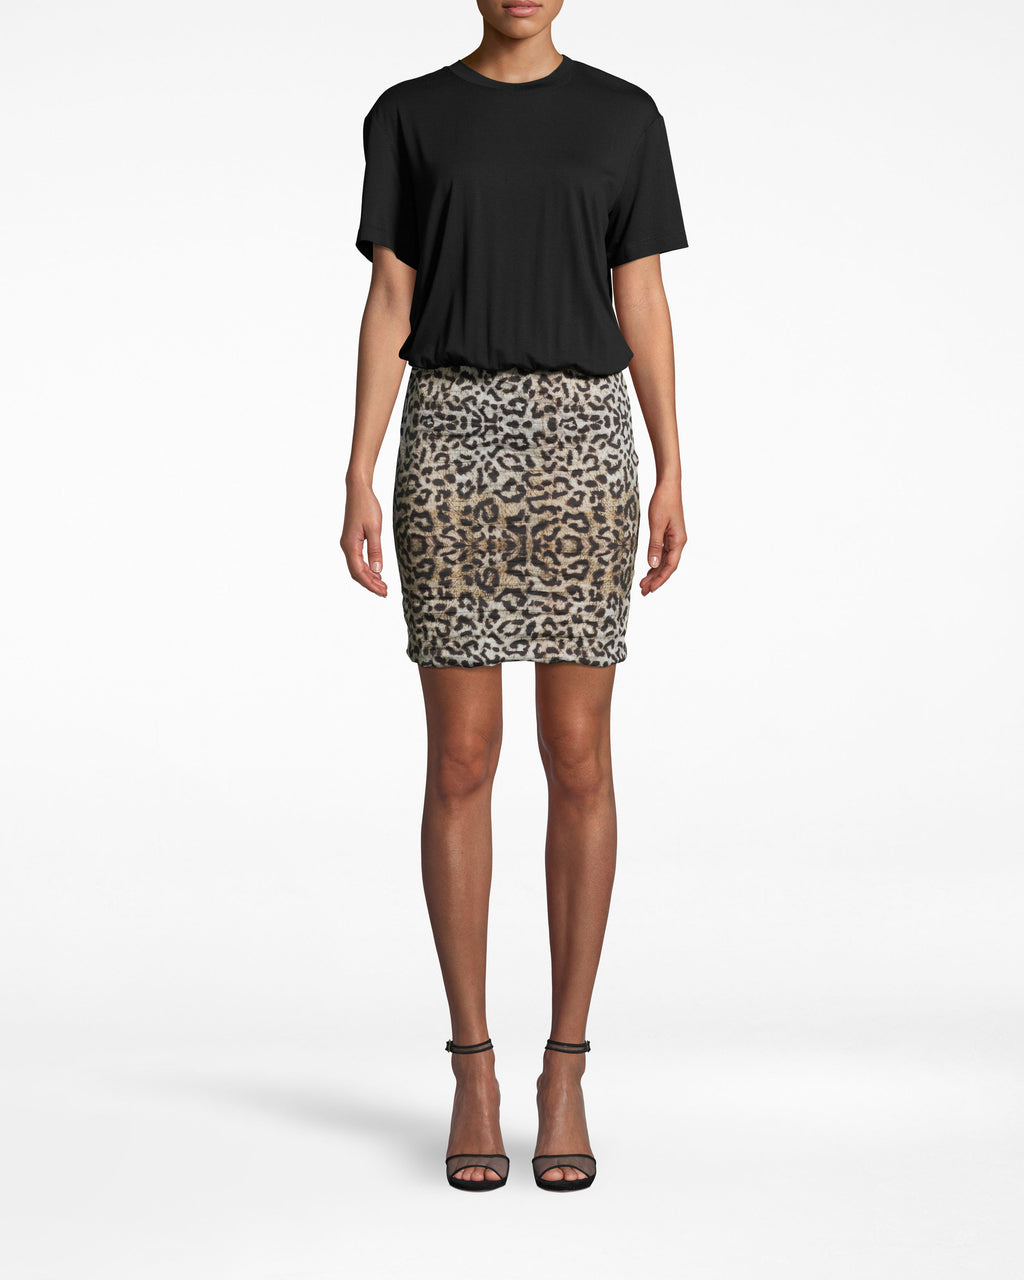 BQ10371 - LEOPARD COMBO SHIRT DRESS - dresses - short - THIS LEOPARD COMBO SHIRT DRESS IS THE ULTIMATE THROW ON AND GO. THE TOP IS A SUPER SOFT T-SHIRT WHILE THE FITTED SKIRT IS MADE FROM OUR SIGNATURE COTTON METAL IN LEOPARD PRINT. DRESS IT UP OR DOWN DEPENDING ON THE OCCASION.